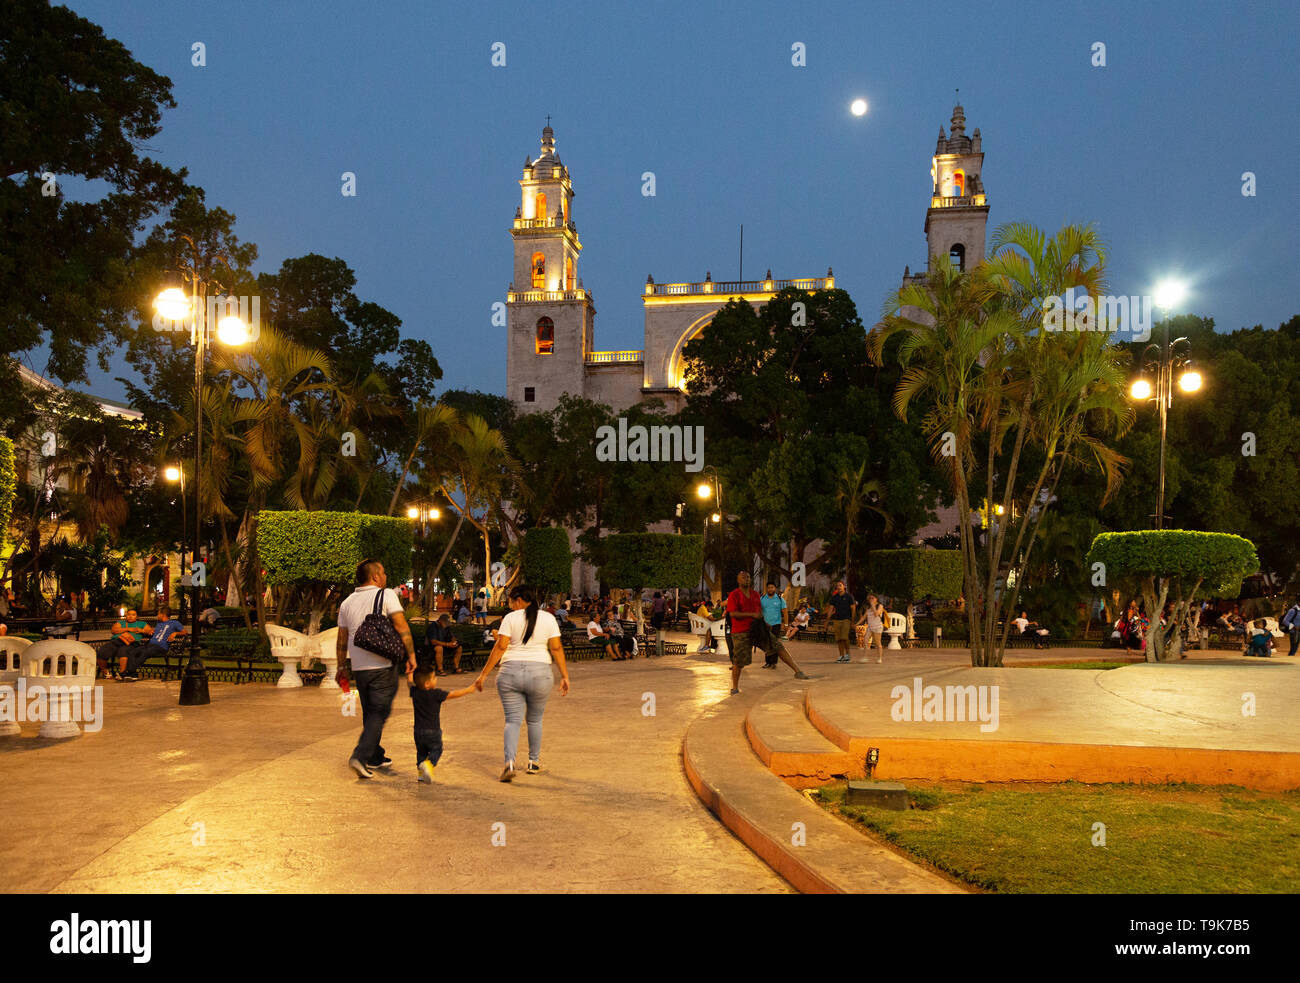 Merida Yucatan Mexico - people in the Plaza de Independencia, or central square, - Stock Image